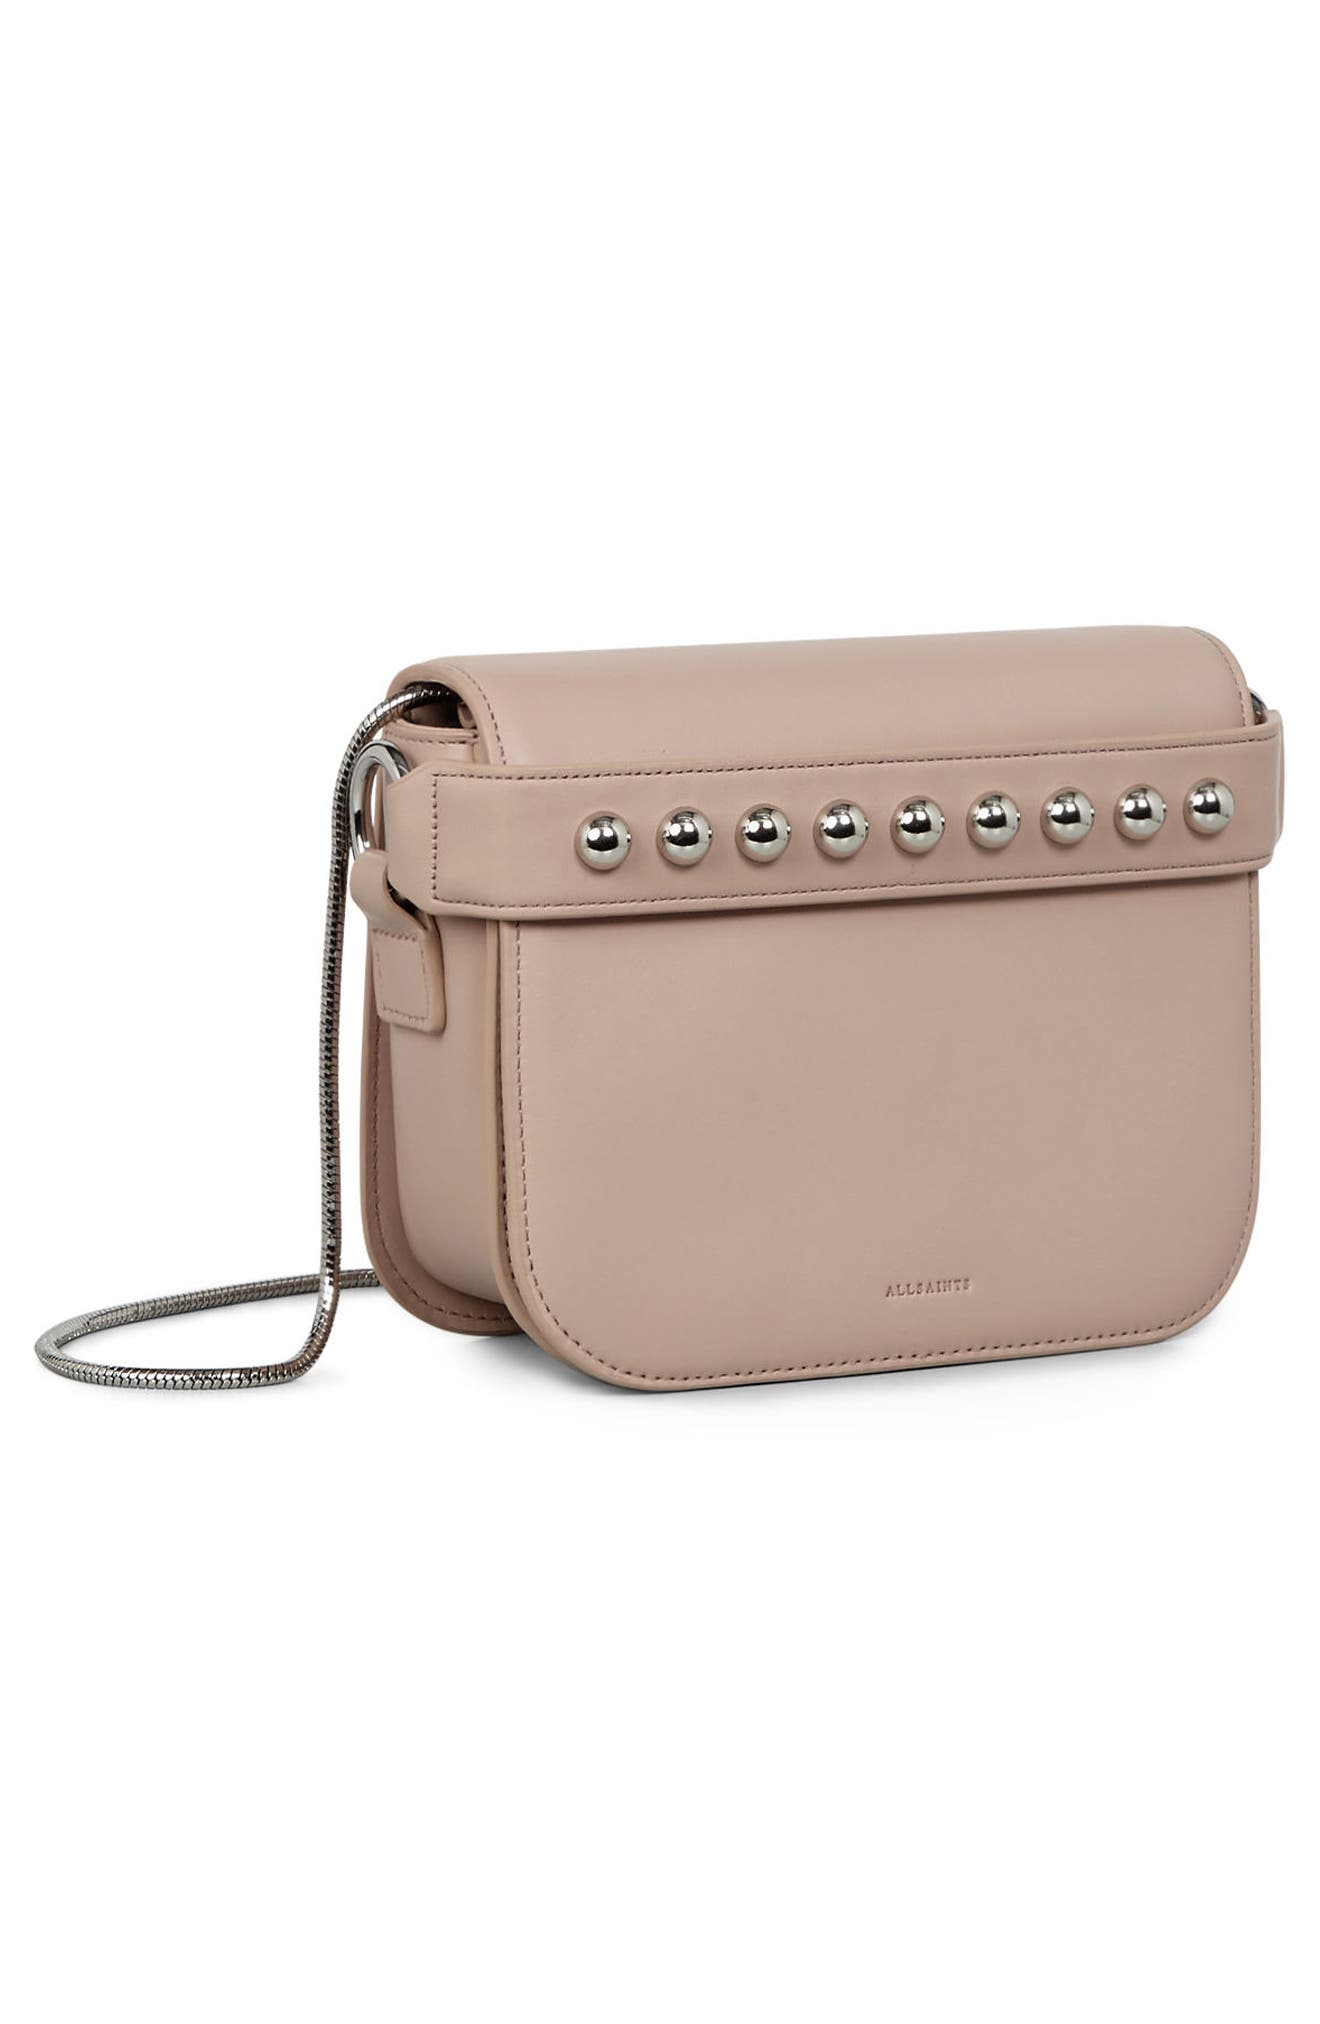 Suzi Studded Leather Clutch,                             Alternate thumbnail 7, color,                             Natural